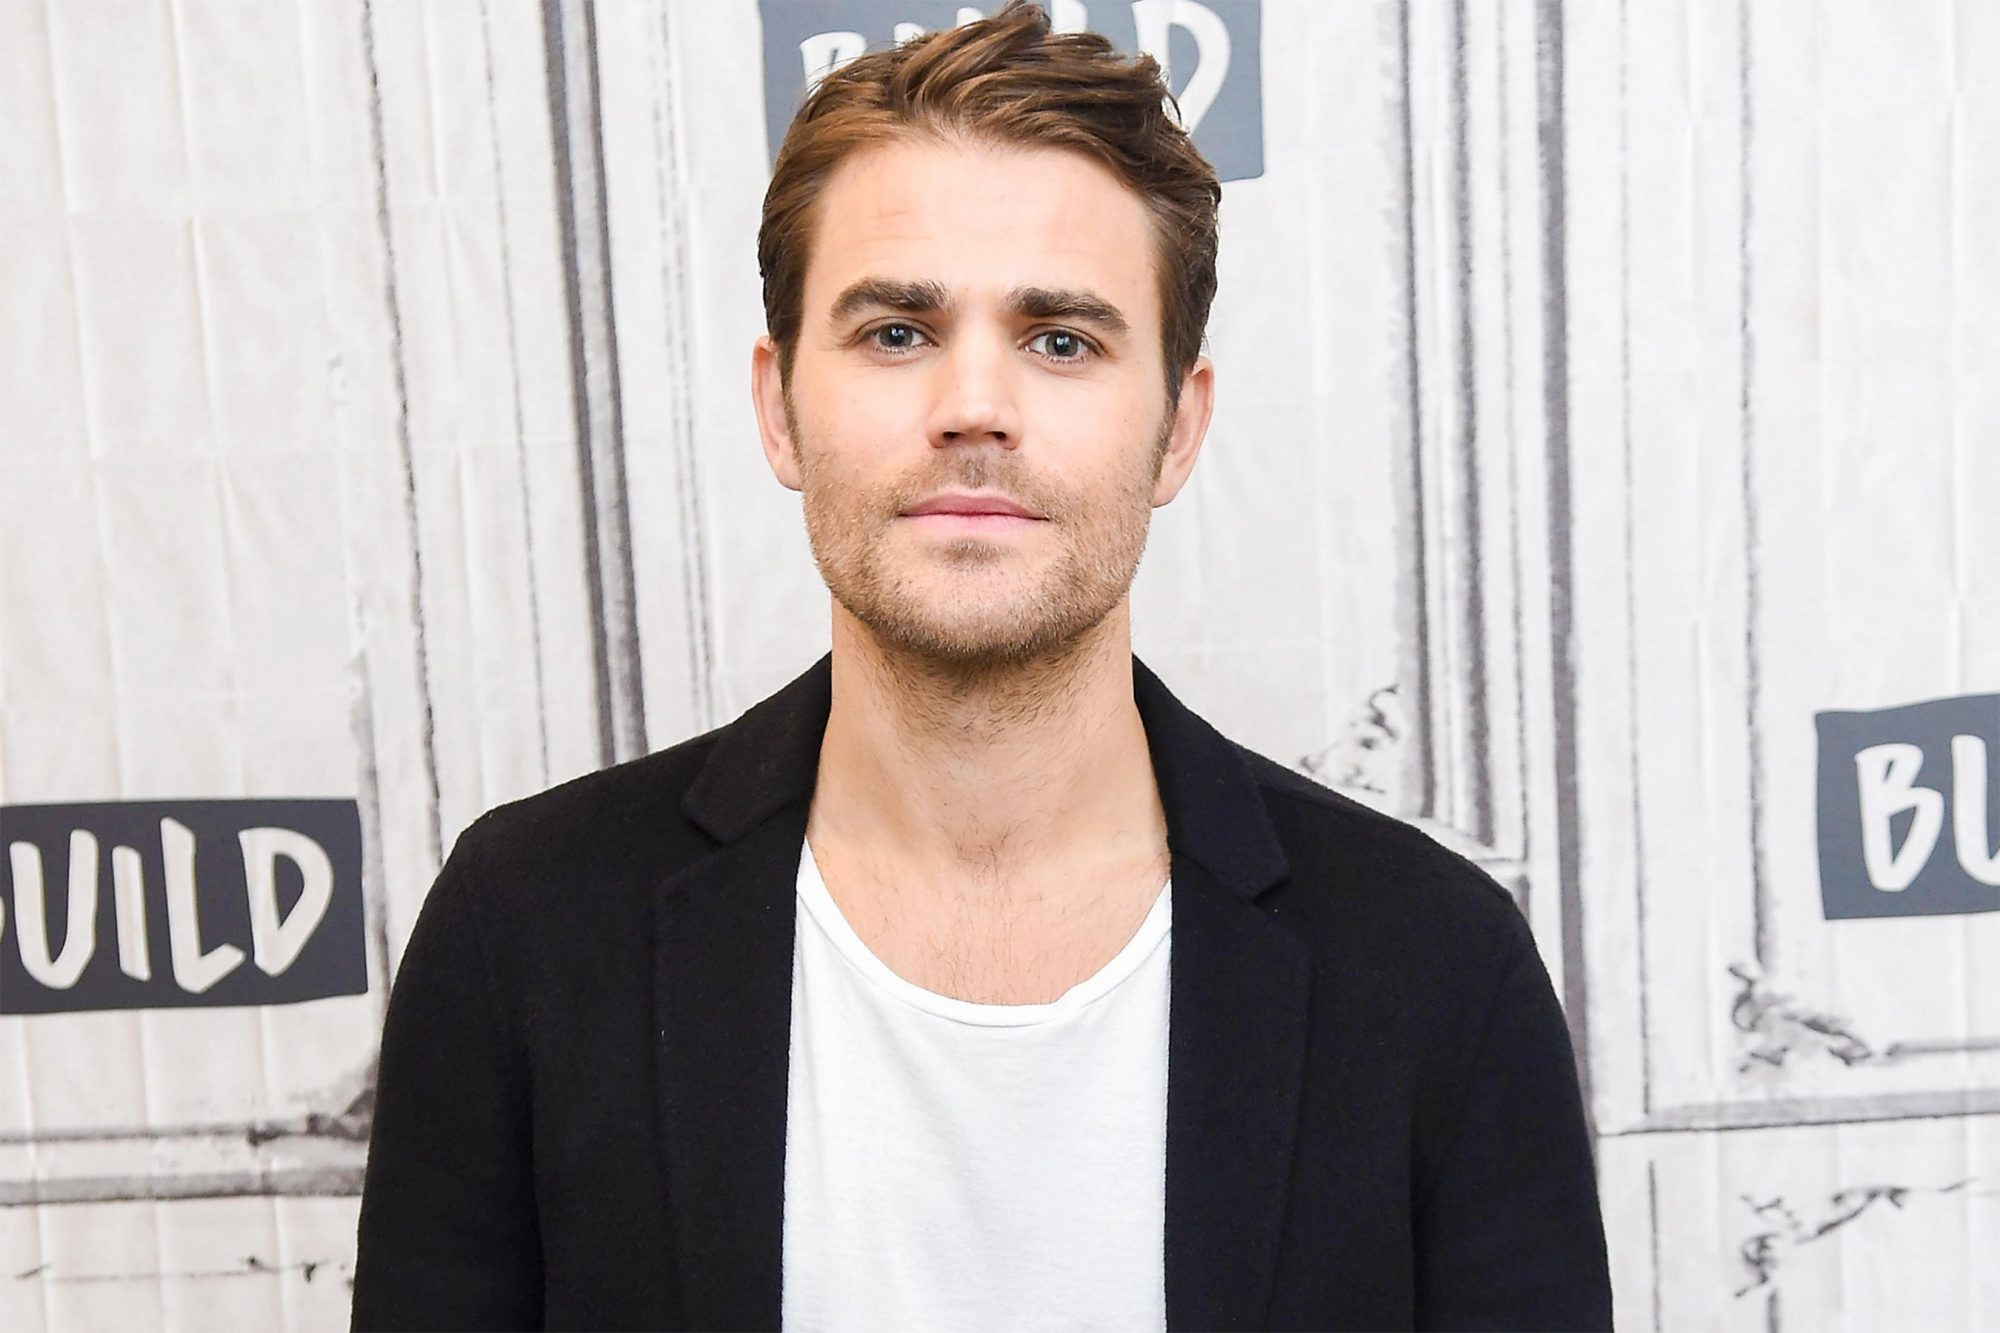 """NEW YORK, NY - OCTOBER 26: Actor Paul Wesley visits Build Series to discuss the CBS All Access show """"Tell Me a Story' at Build Studio on October 26, 2018 in New York City. (Photo by Gary Gershoff/Getty Images)"""